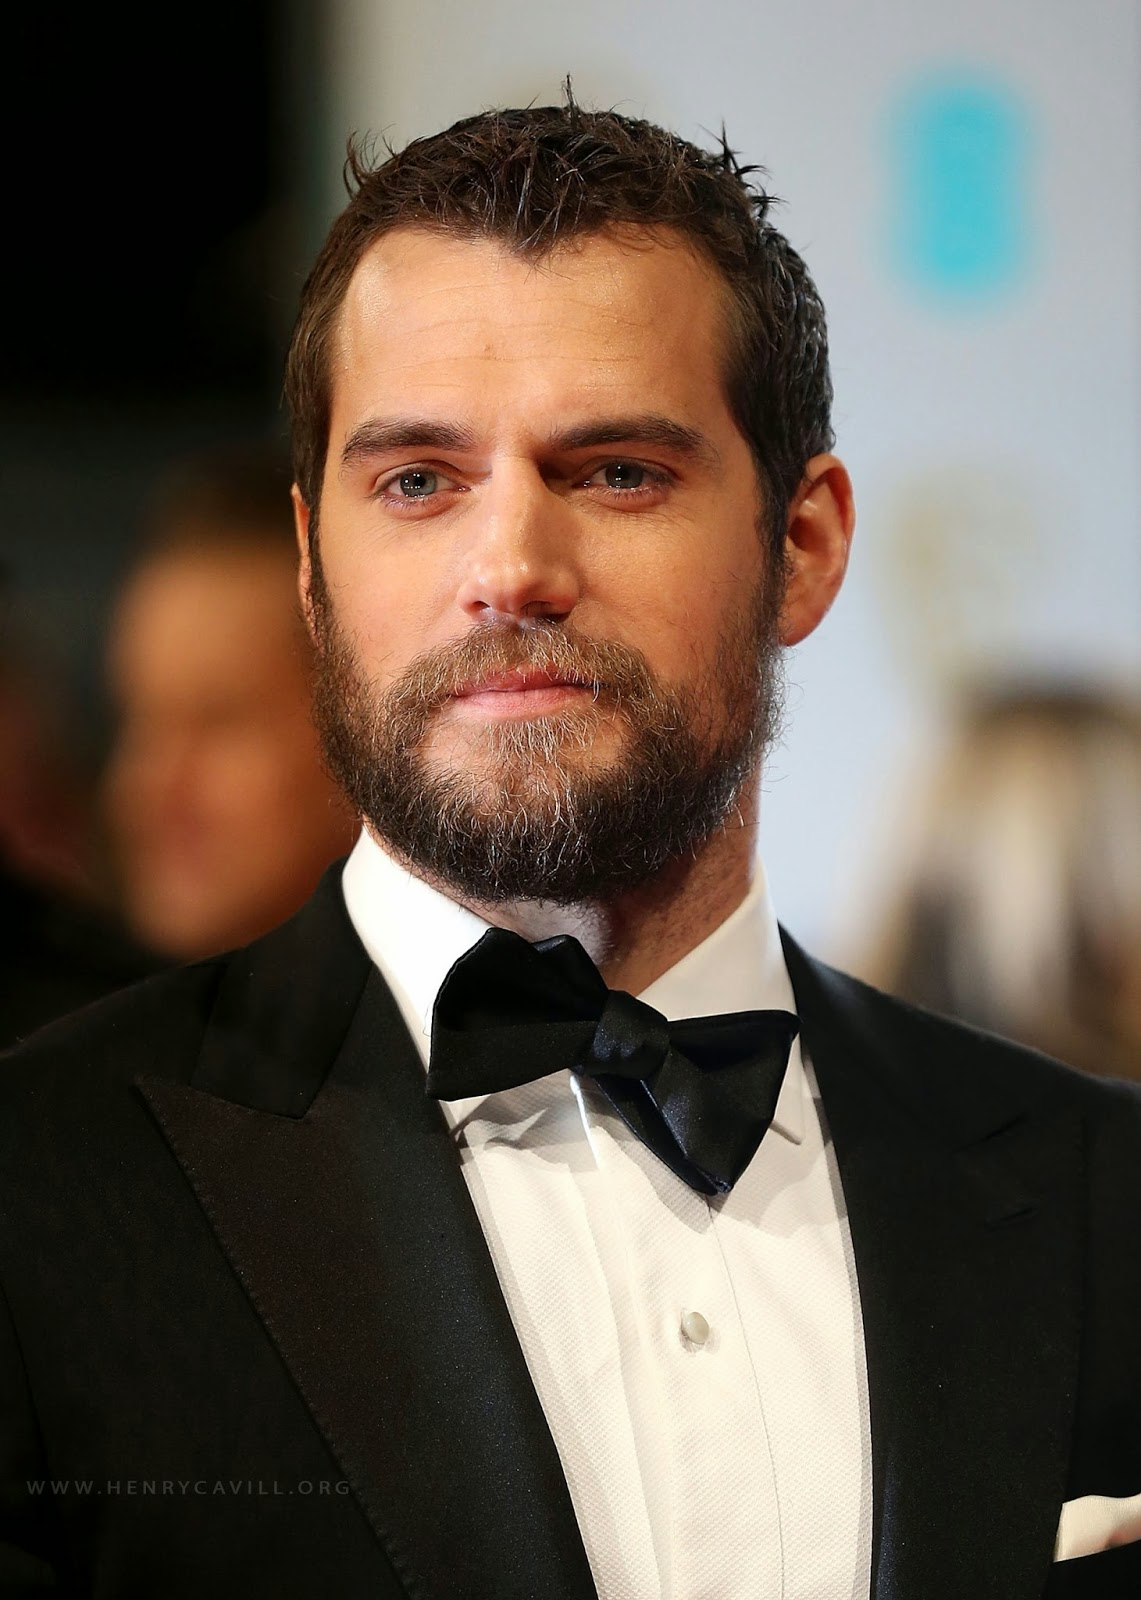 henry cavill wikihenry cavill gif, henry cavill young, henry cavill vk, henry cavill height, henry cavill twitter, henry cavill 2017, henry cavill instagram, henry cavill workout, henry cavill 2016, henry cavill eyes, henry cavill gif hunt, henry cavill films, henry cavill рост, henry cavill training, henry cavill kinopoisk, henry cavill wife, henry cavill and jason momoa, henry cavill wiki, henry cavill long hair, henry cavill movies